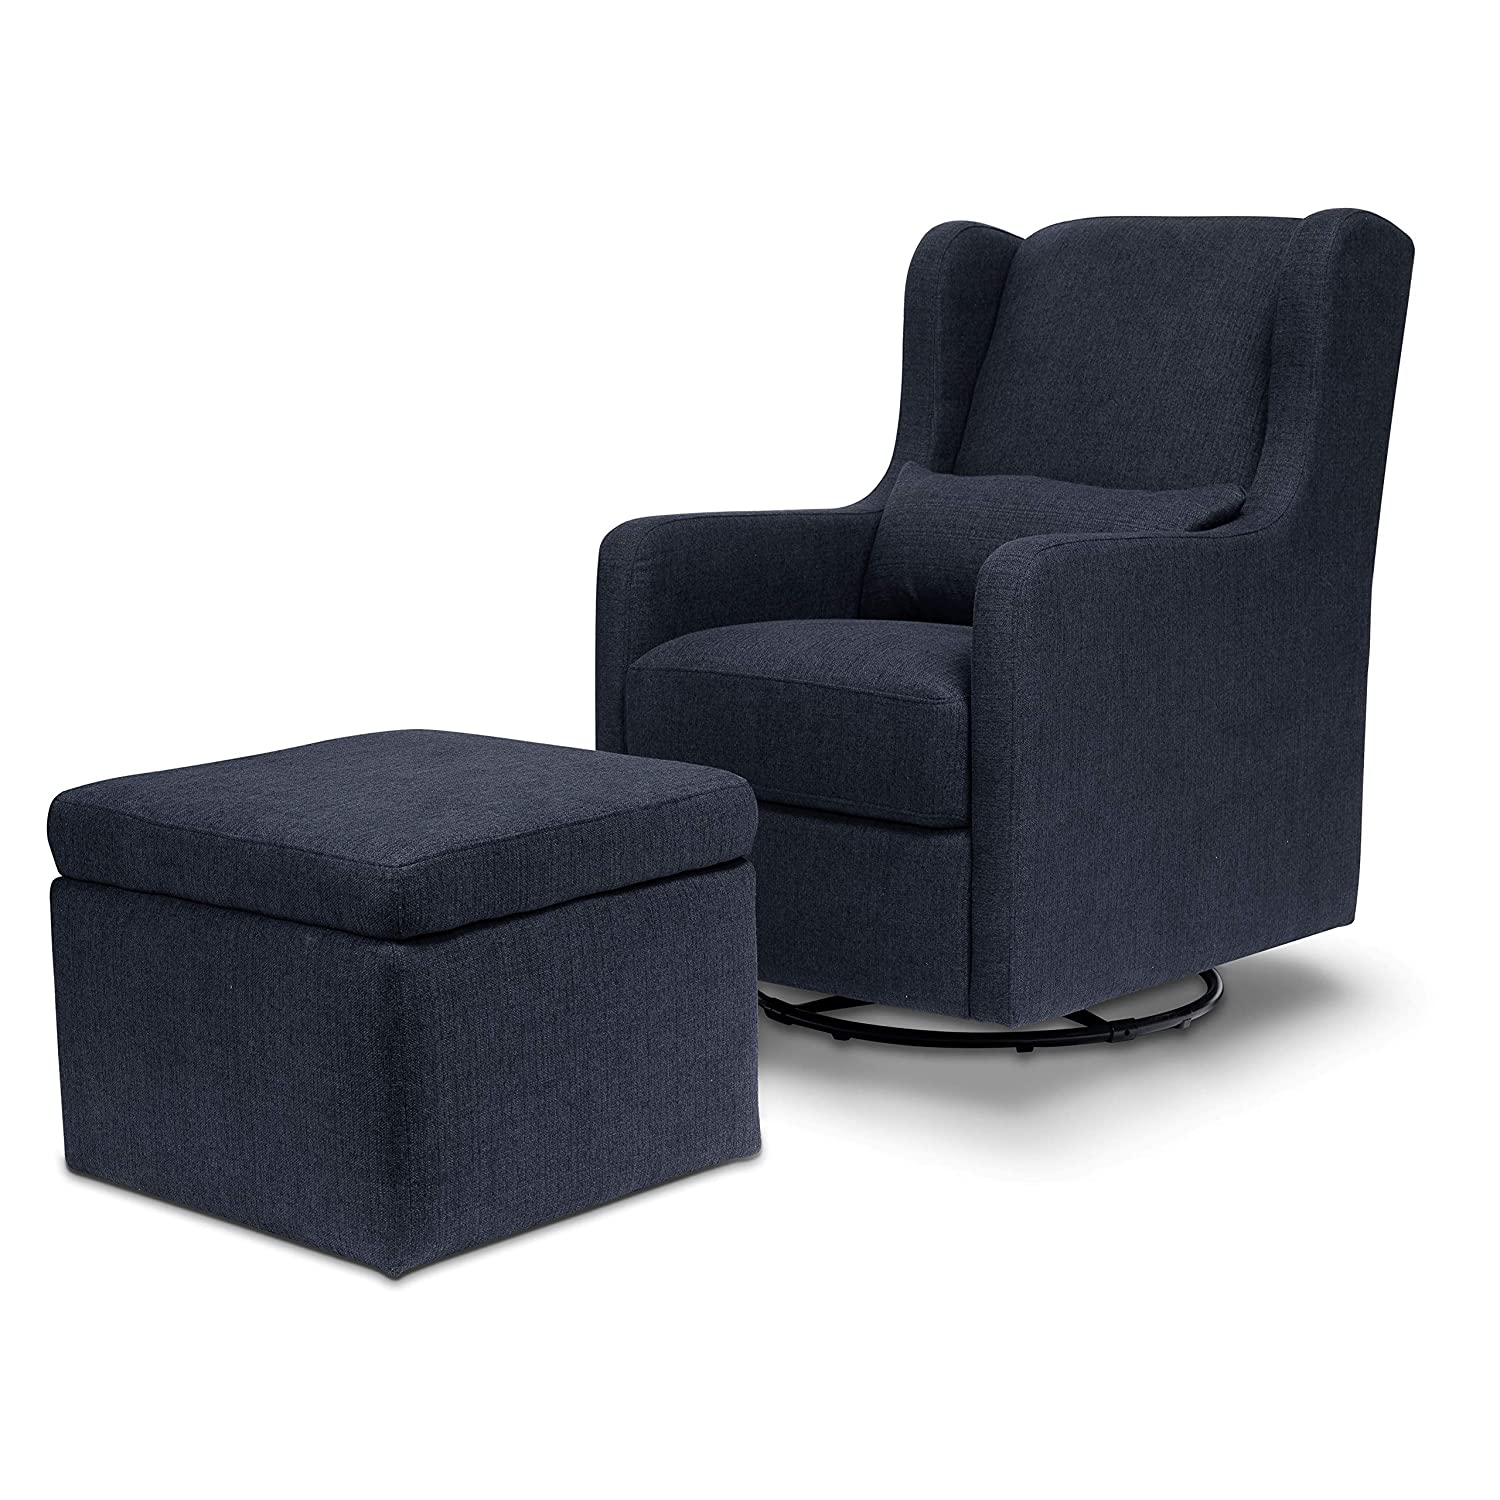 Carter's by Davinci Adrian Swivel Glider with Storage Ottoman in Performance Navy Linen